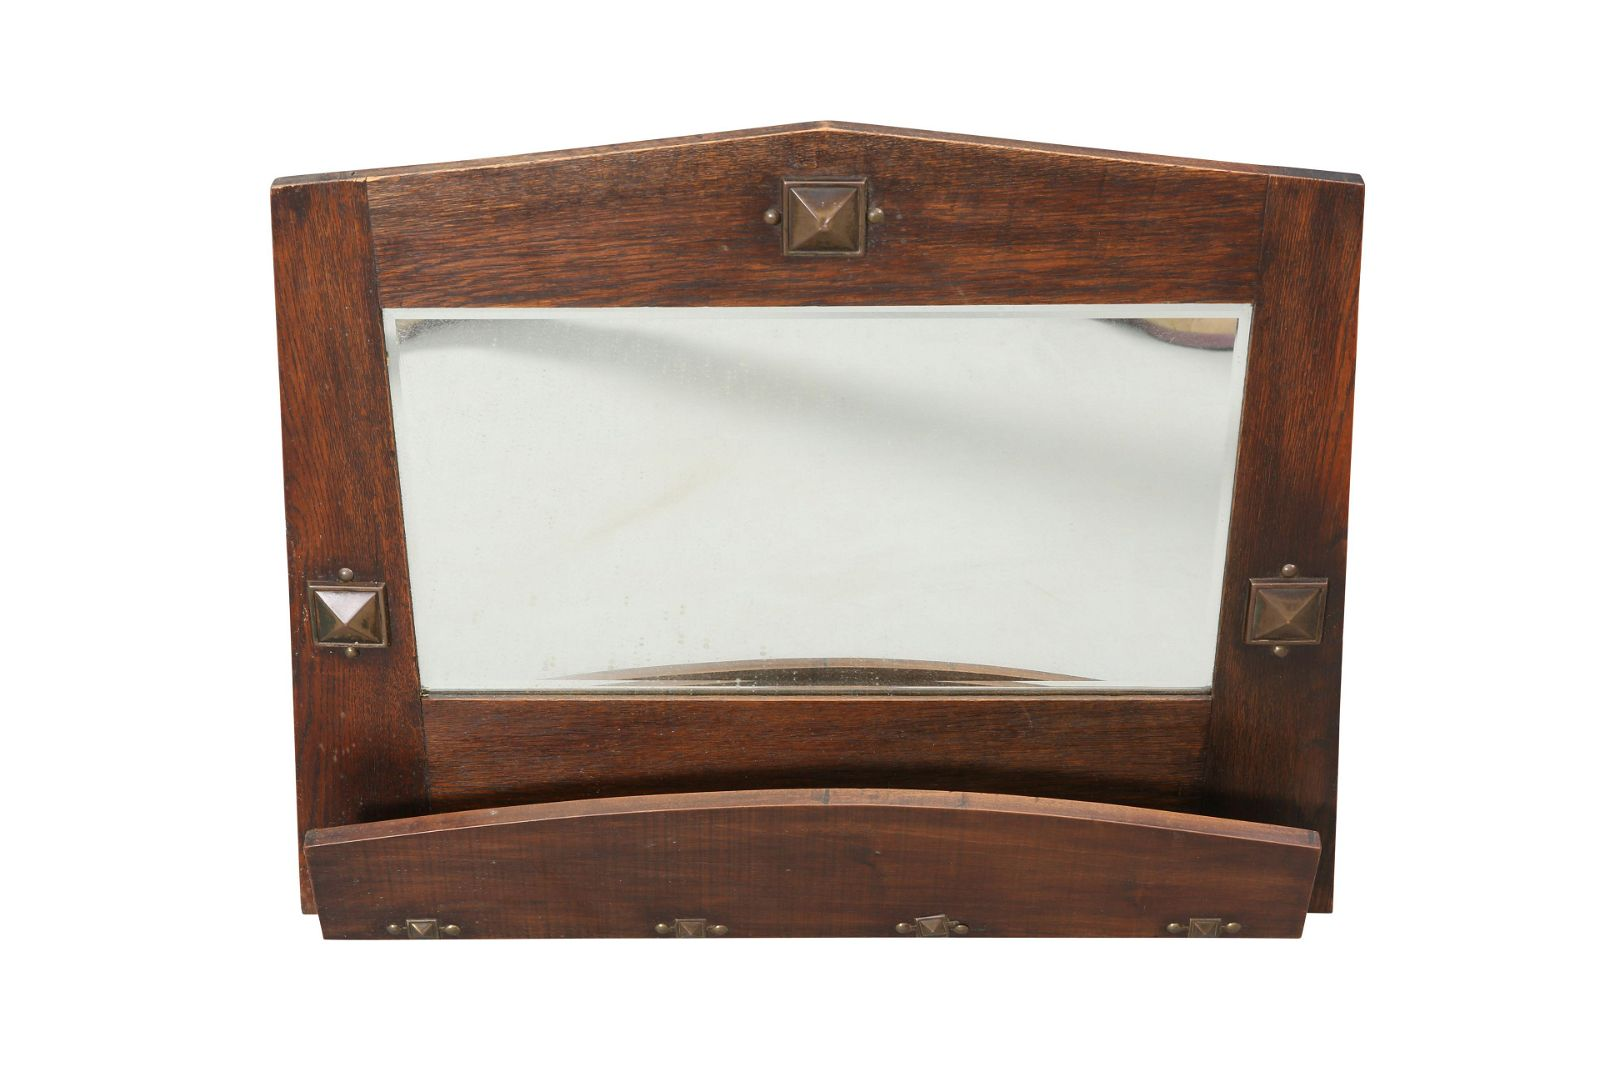 AN ARTS AND CRAFTS METAL-MOUNTED OAK HALL MIRROR,